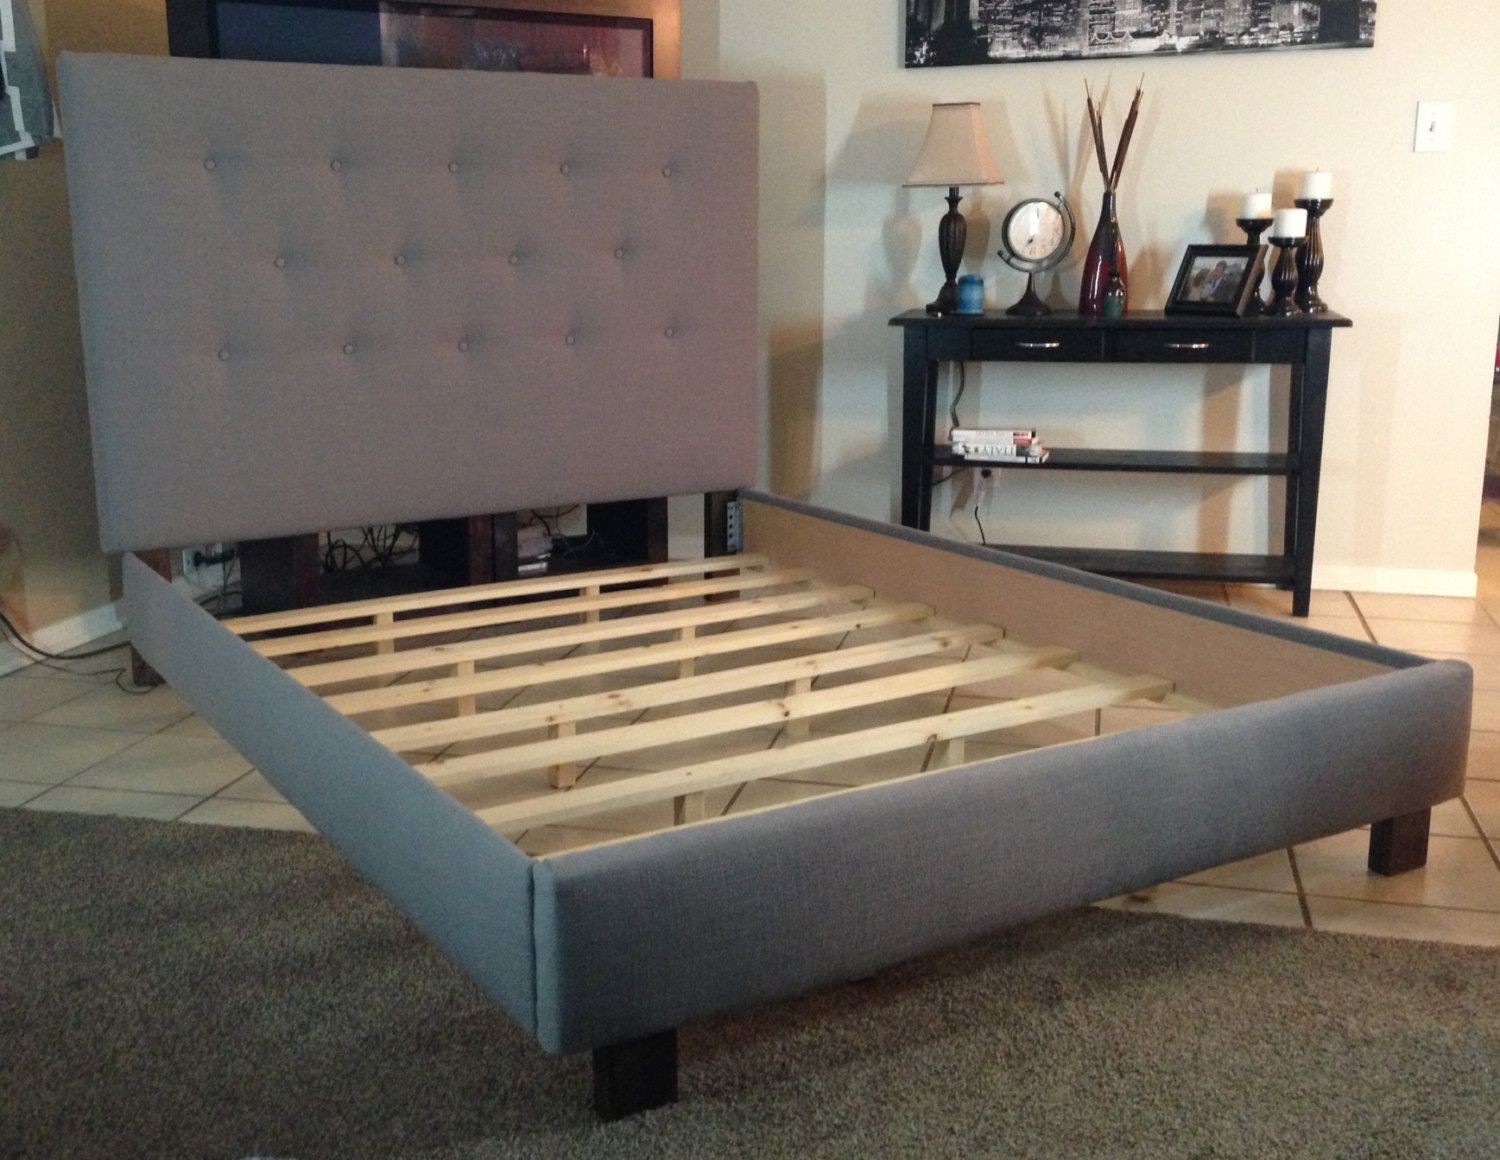 diy upholstered bed step by step guide to building and upholstering a queen size bed this project is perfect for beginners and can be completed in a